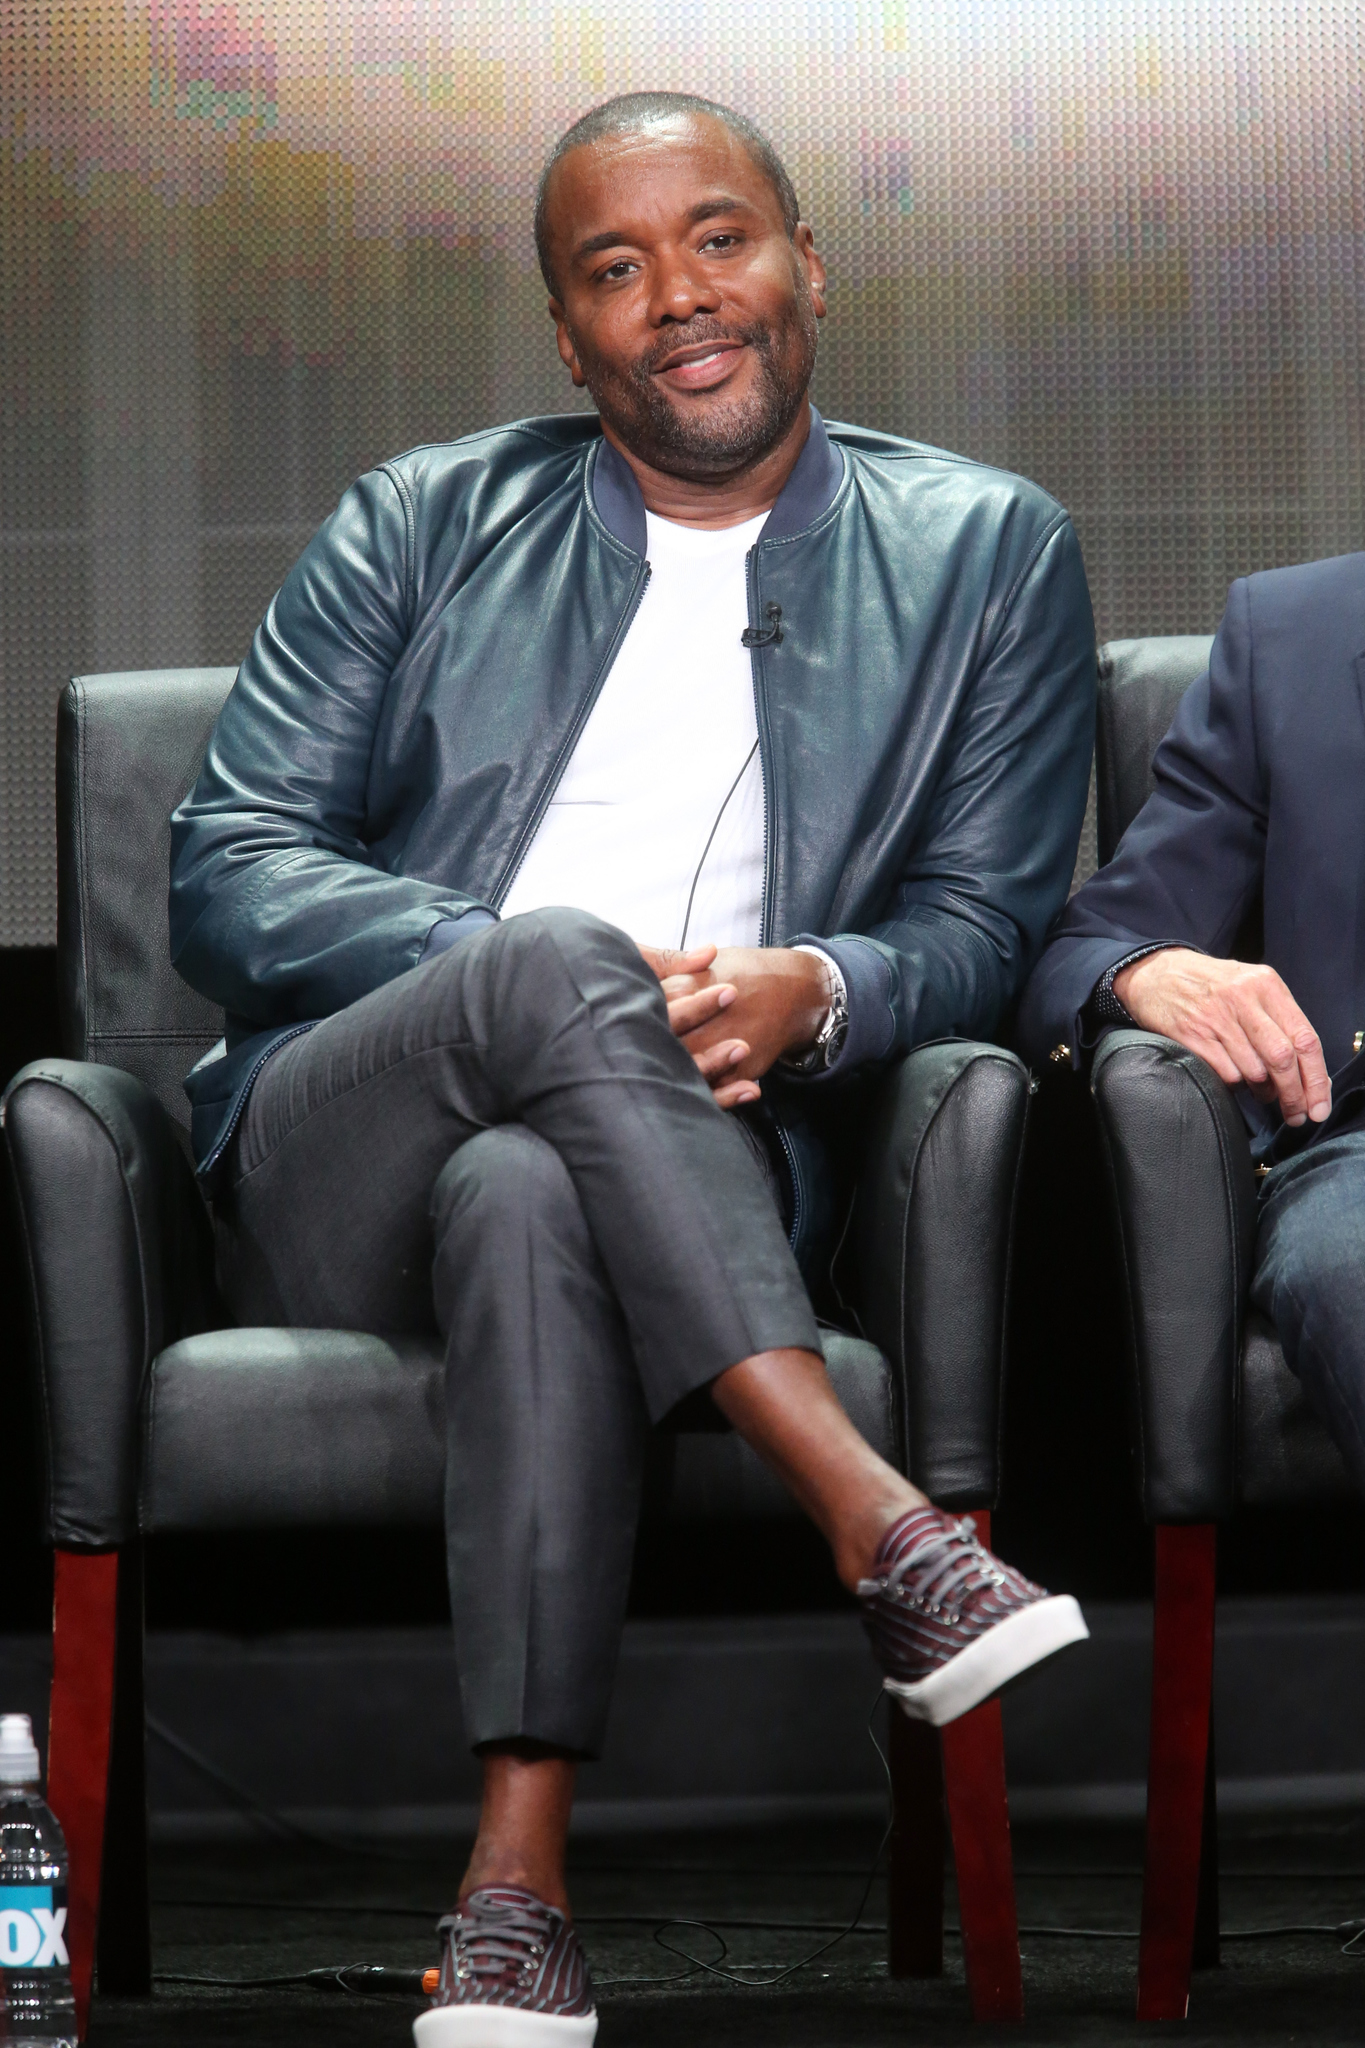 Lee Daniels at an event for Empire (2015)